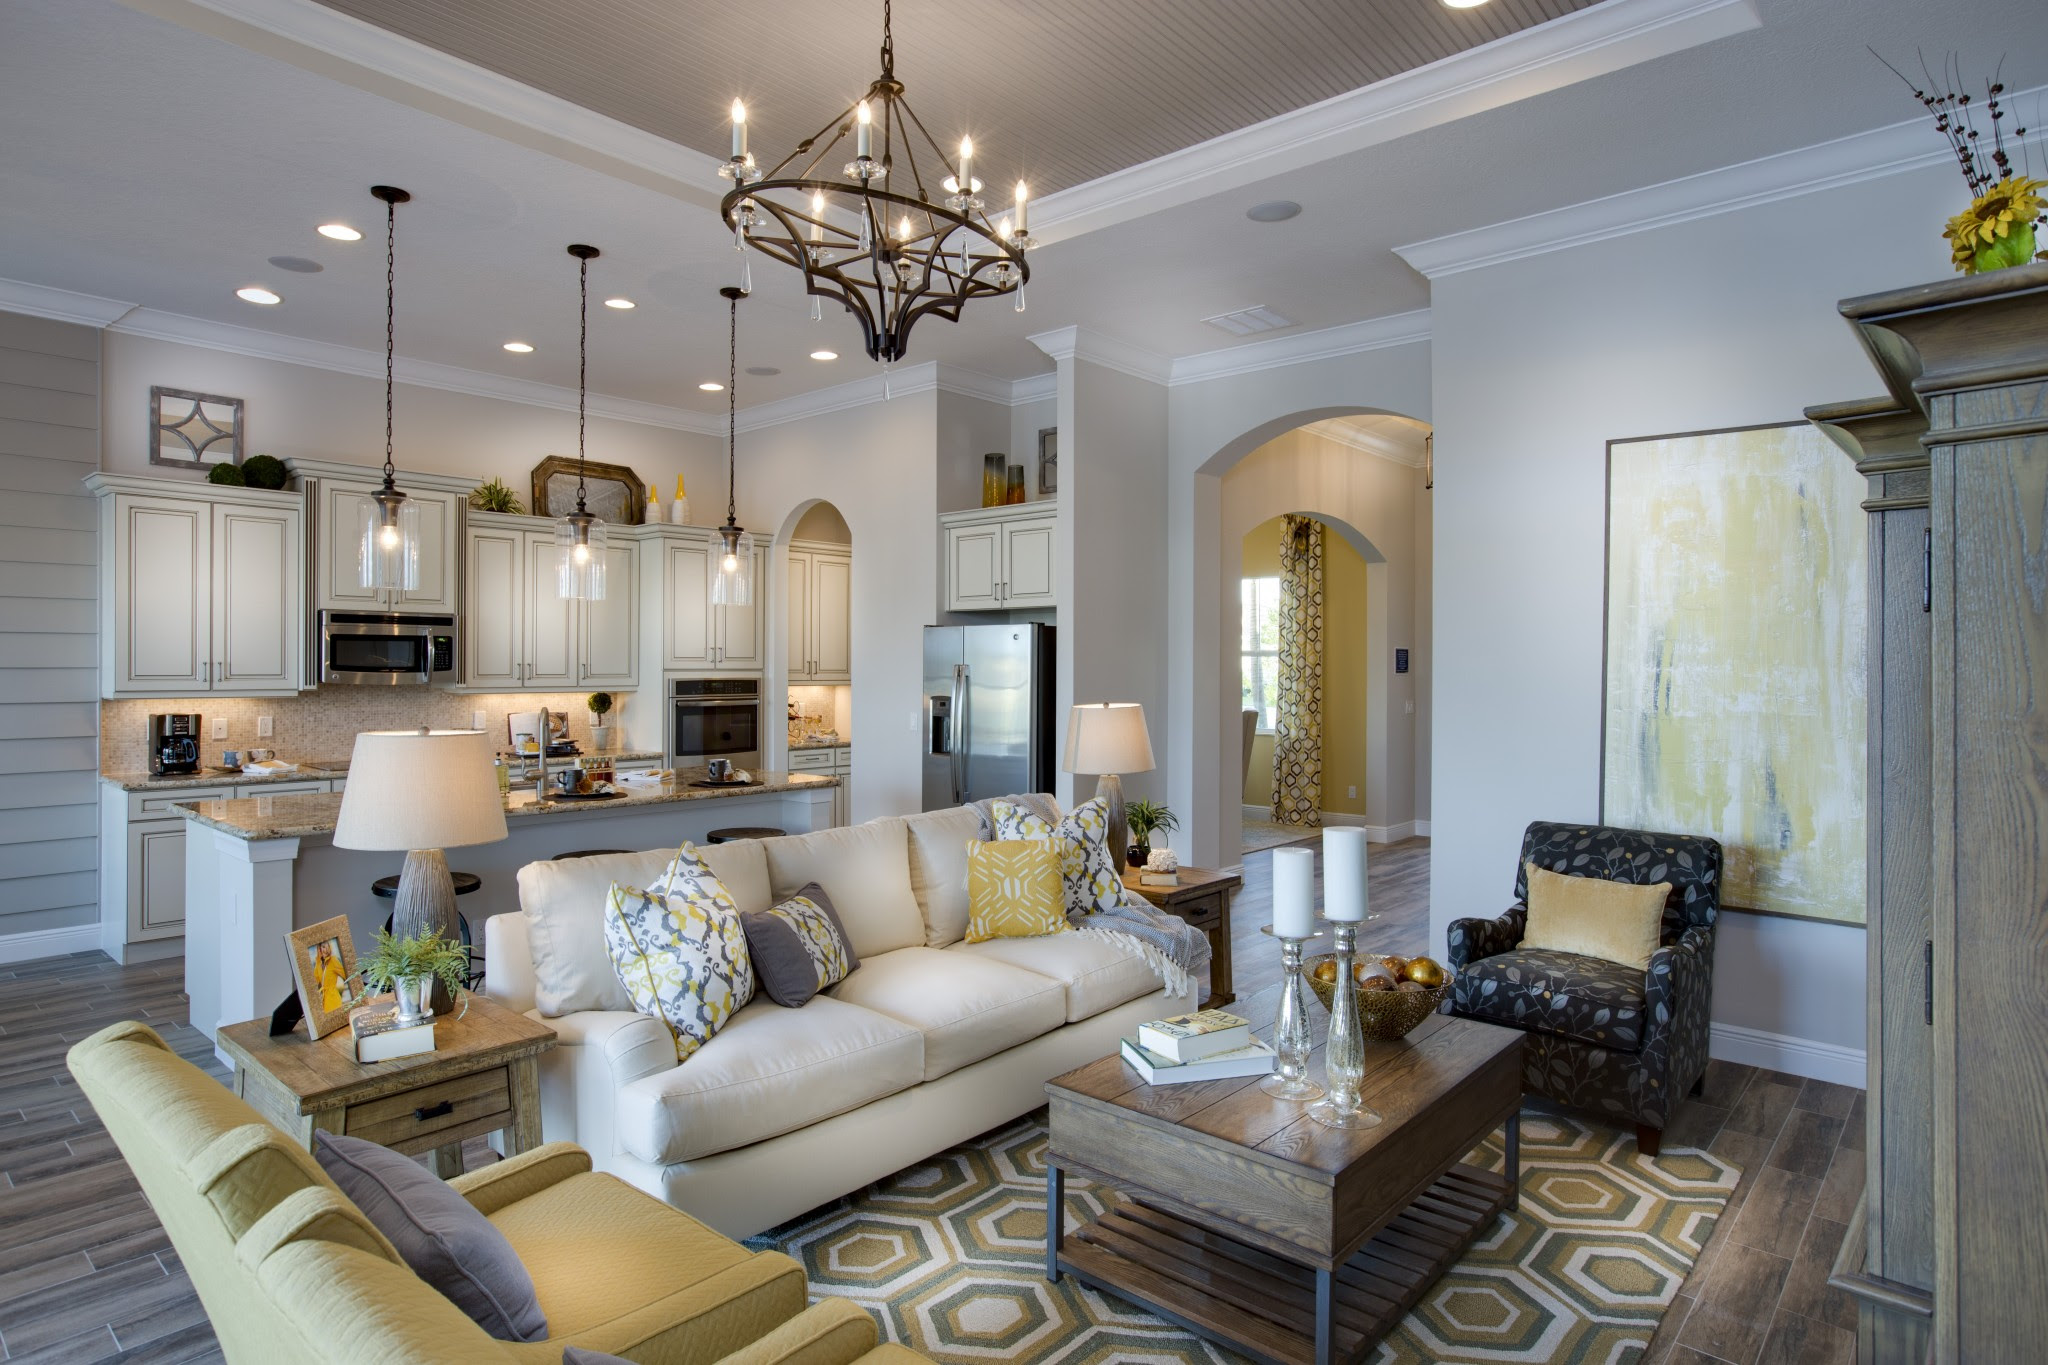 decorated model homes | Model Home Merchandising to ...